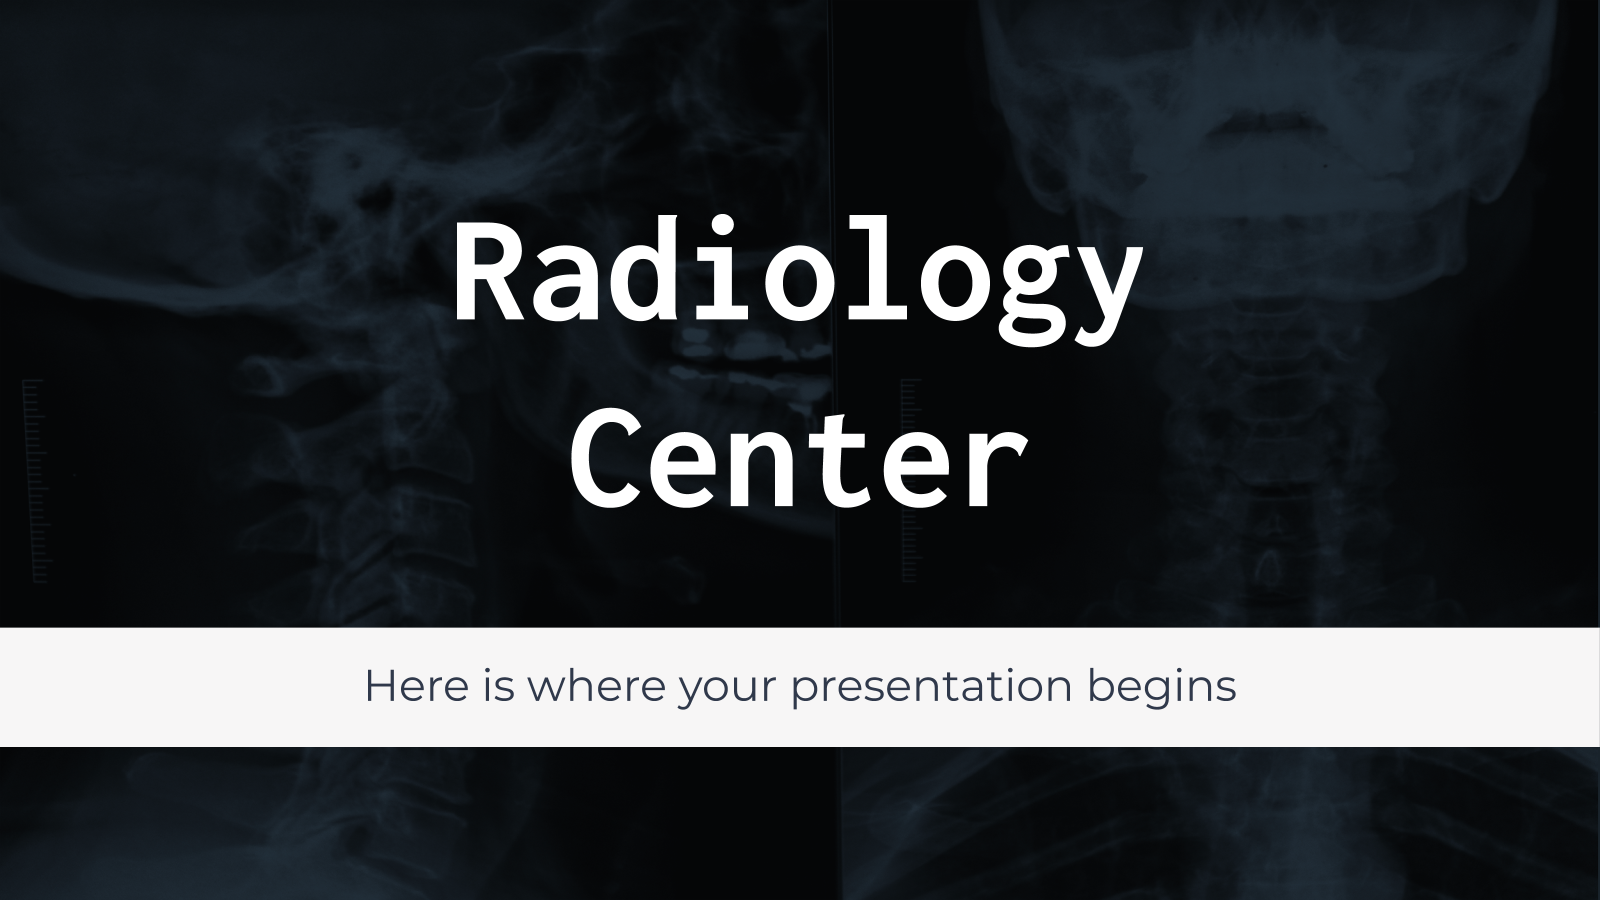 Radiology Center presentation template